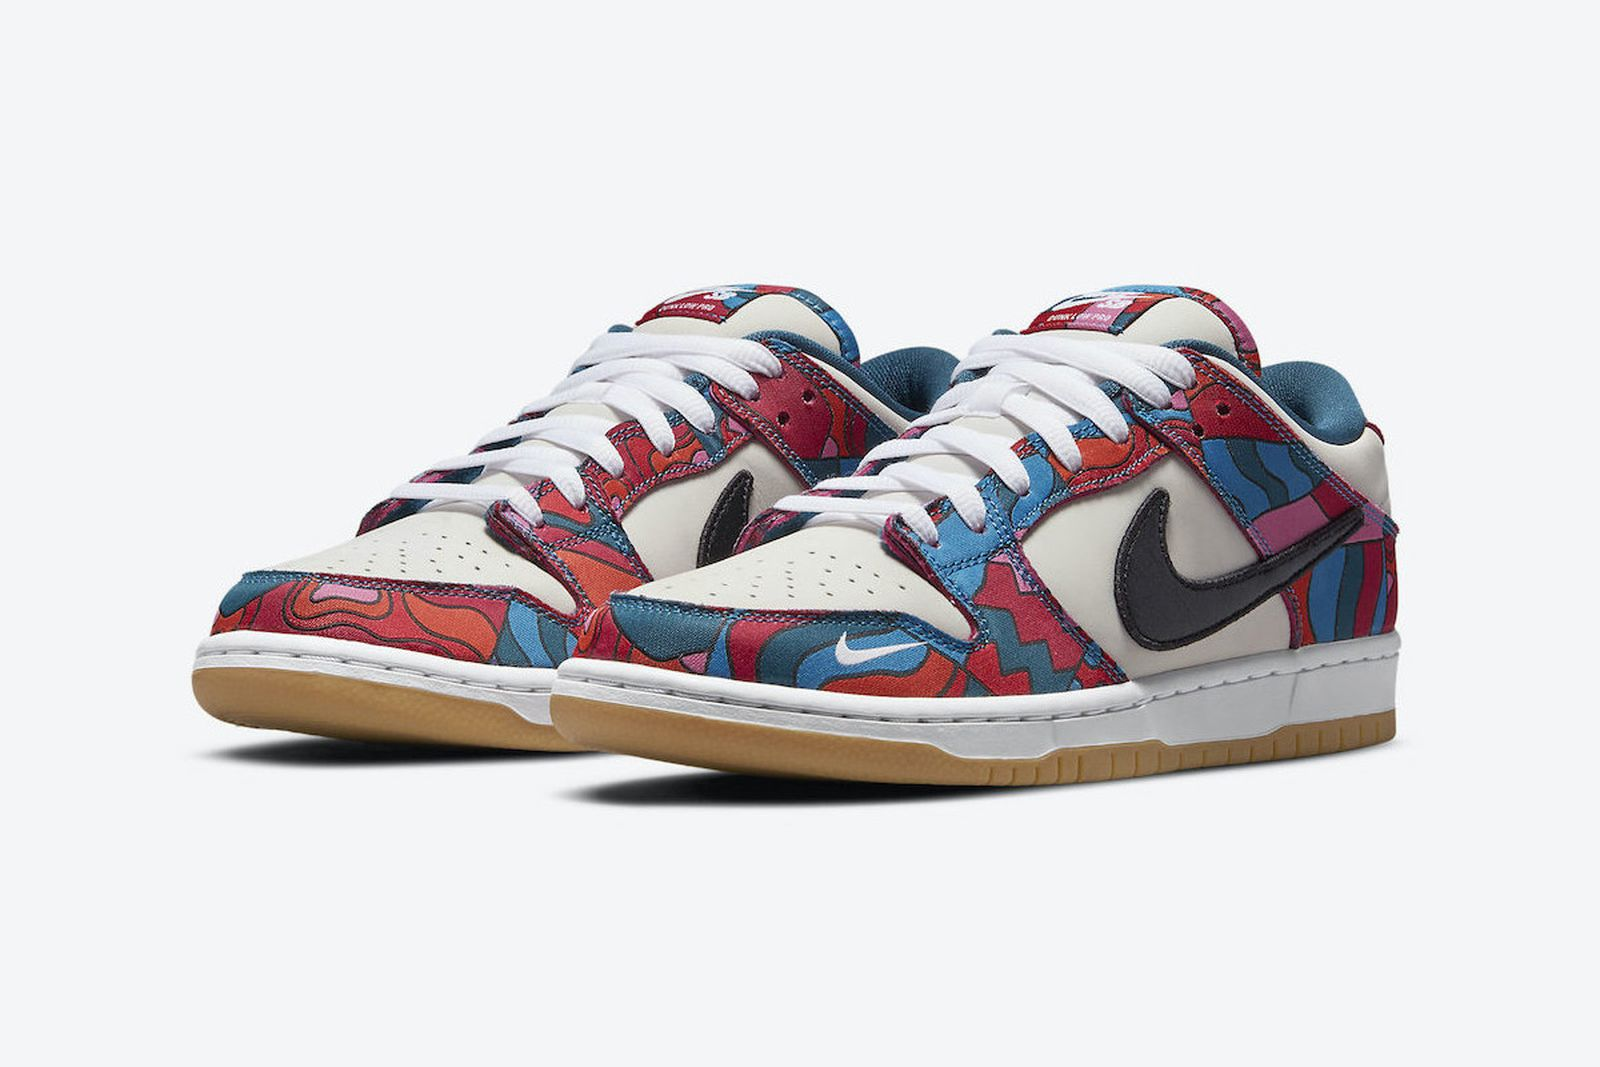 parra-nike-sb-dunk-low-2021-release-date-price-02